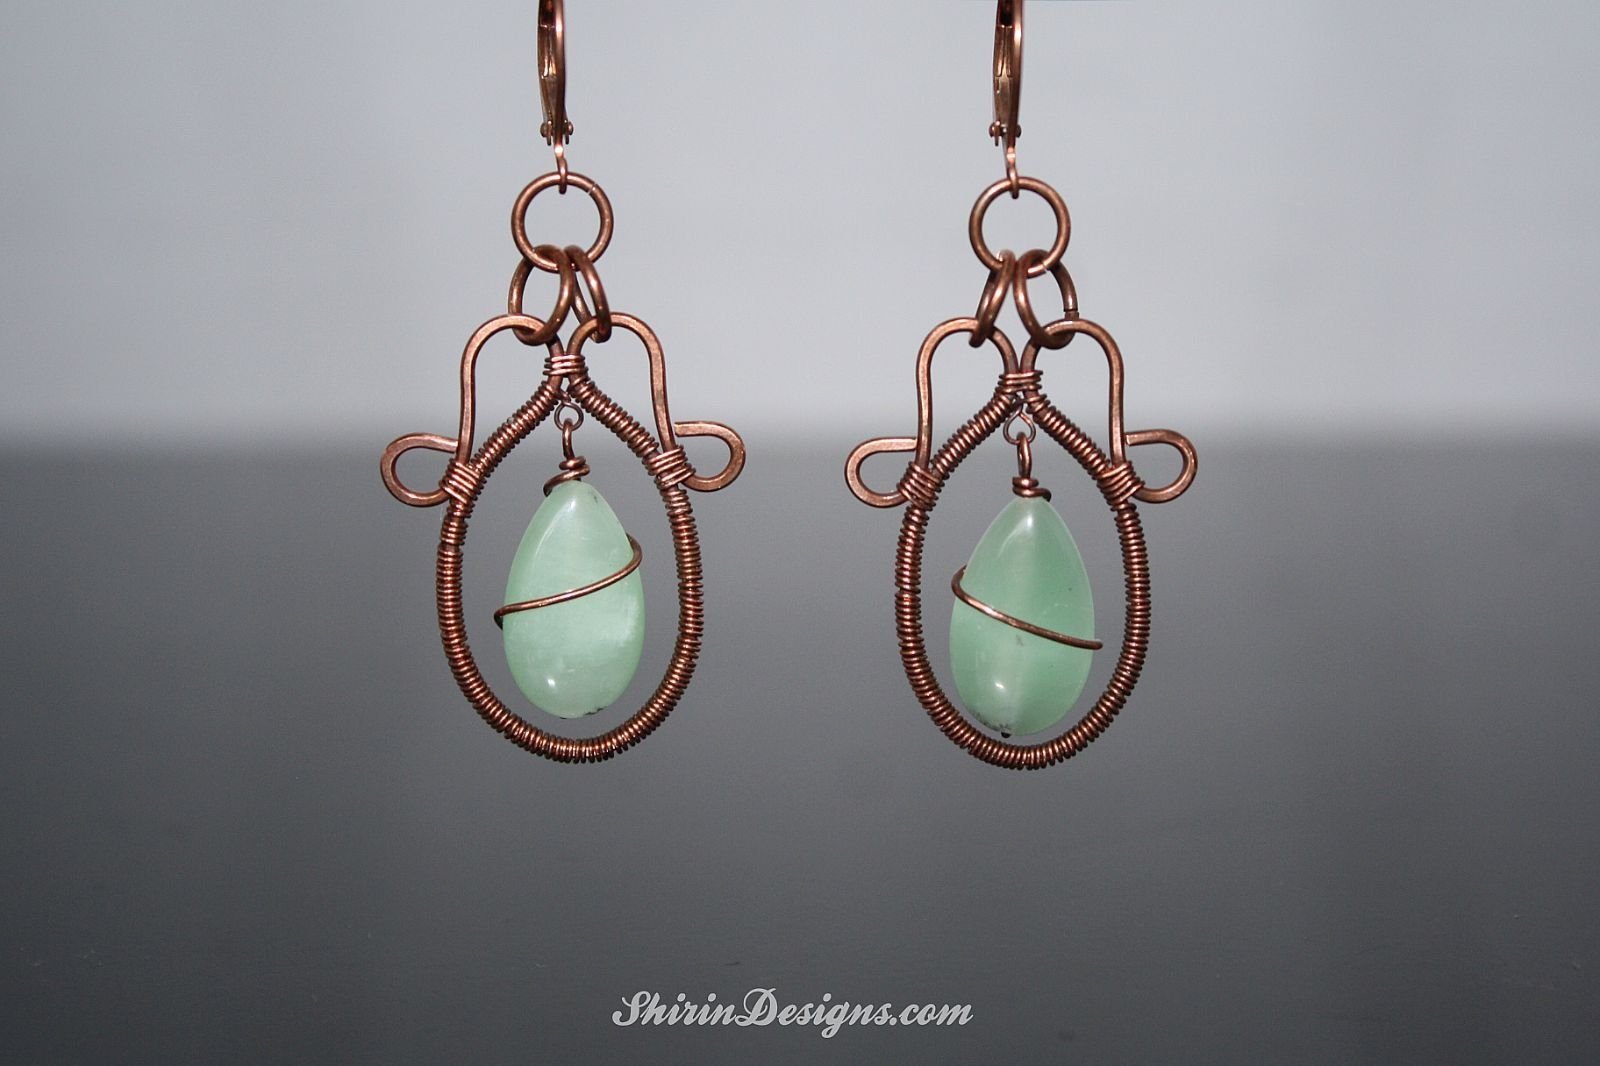 Green Amazonite and Copper and made earrings.